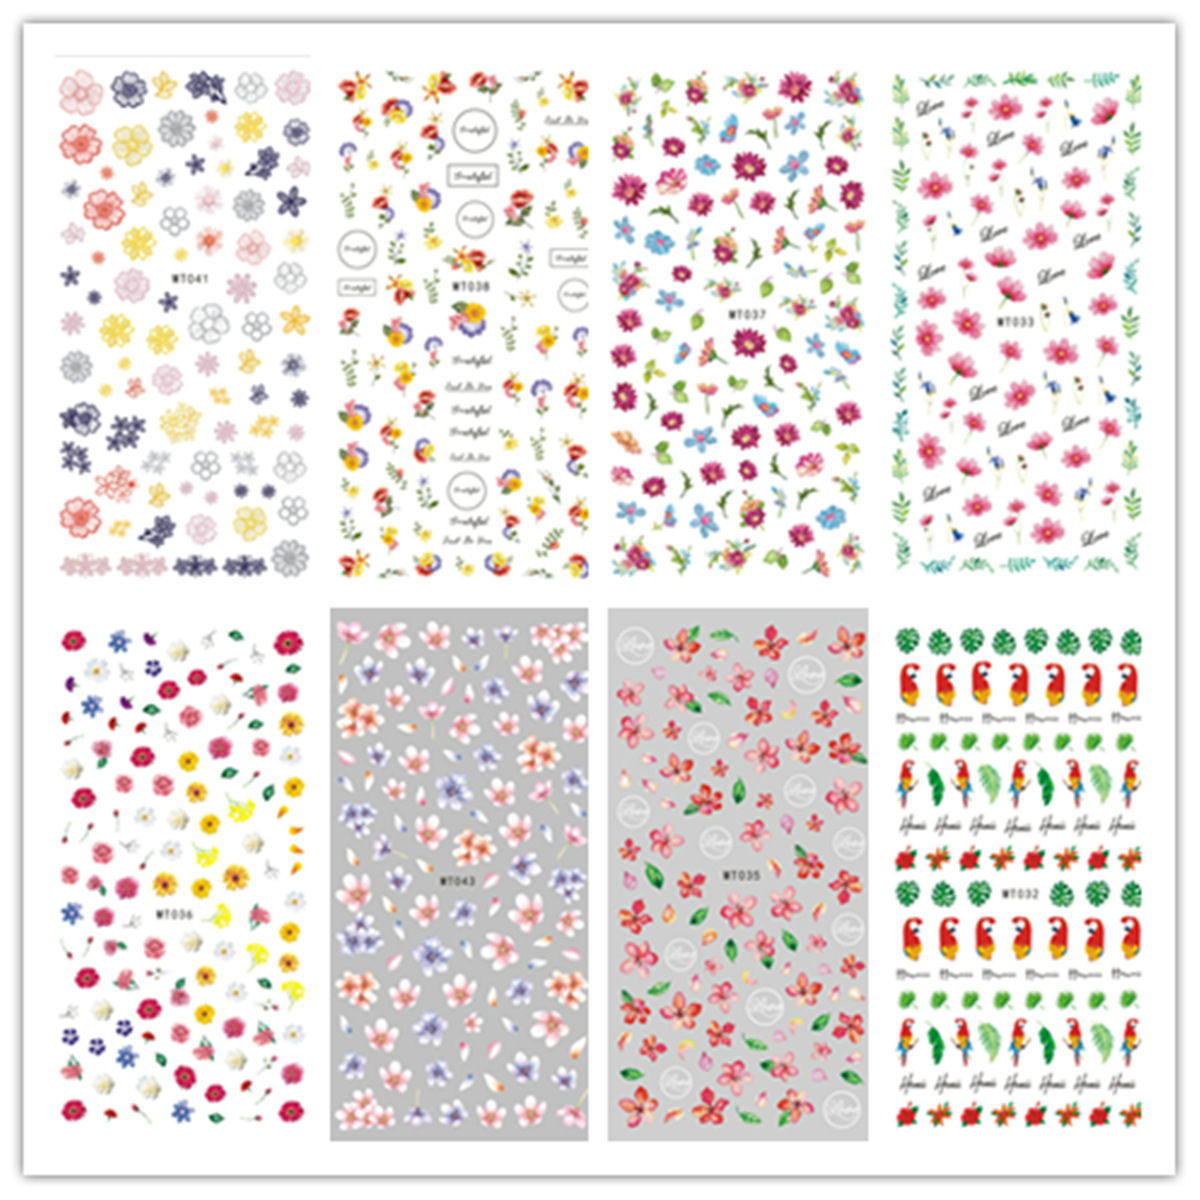 MT032-046 New Style Day South Korea Nail Sticker 3D Flower Nail Decals Nail Jewelry